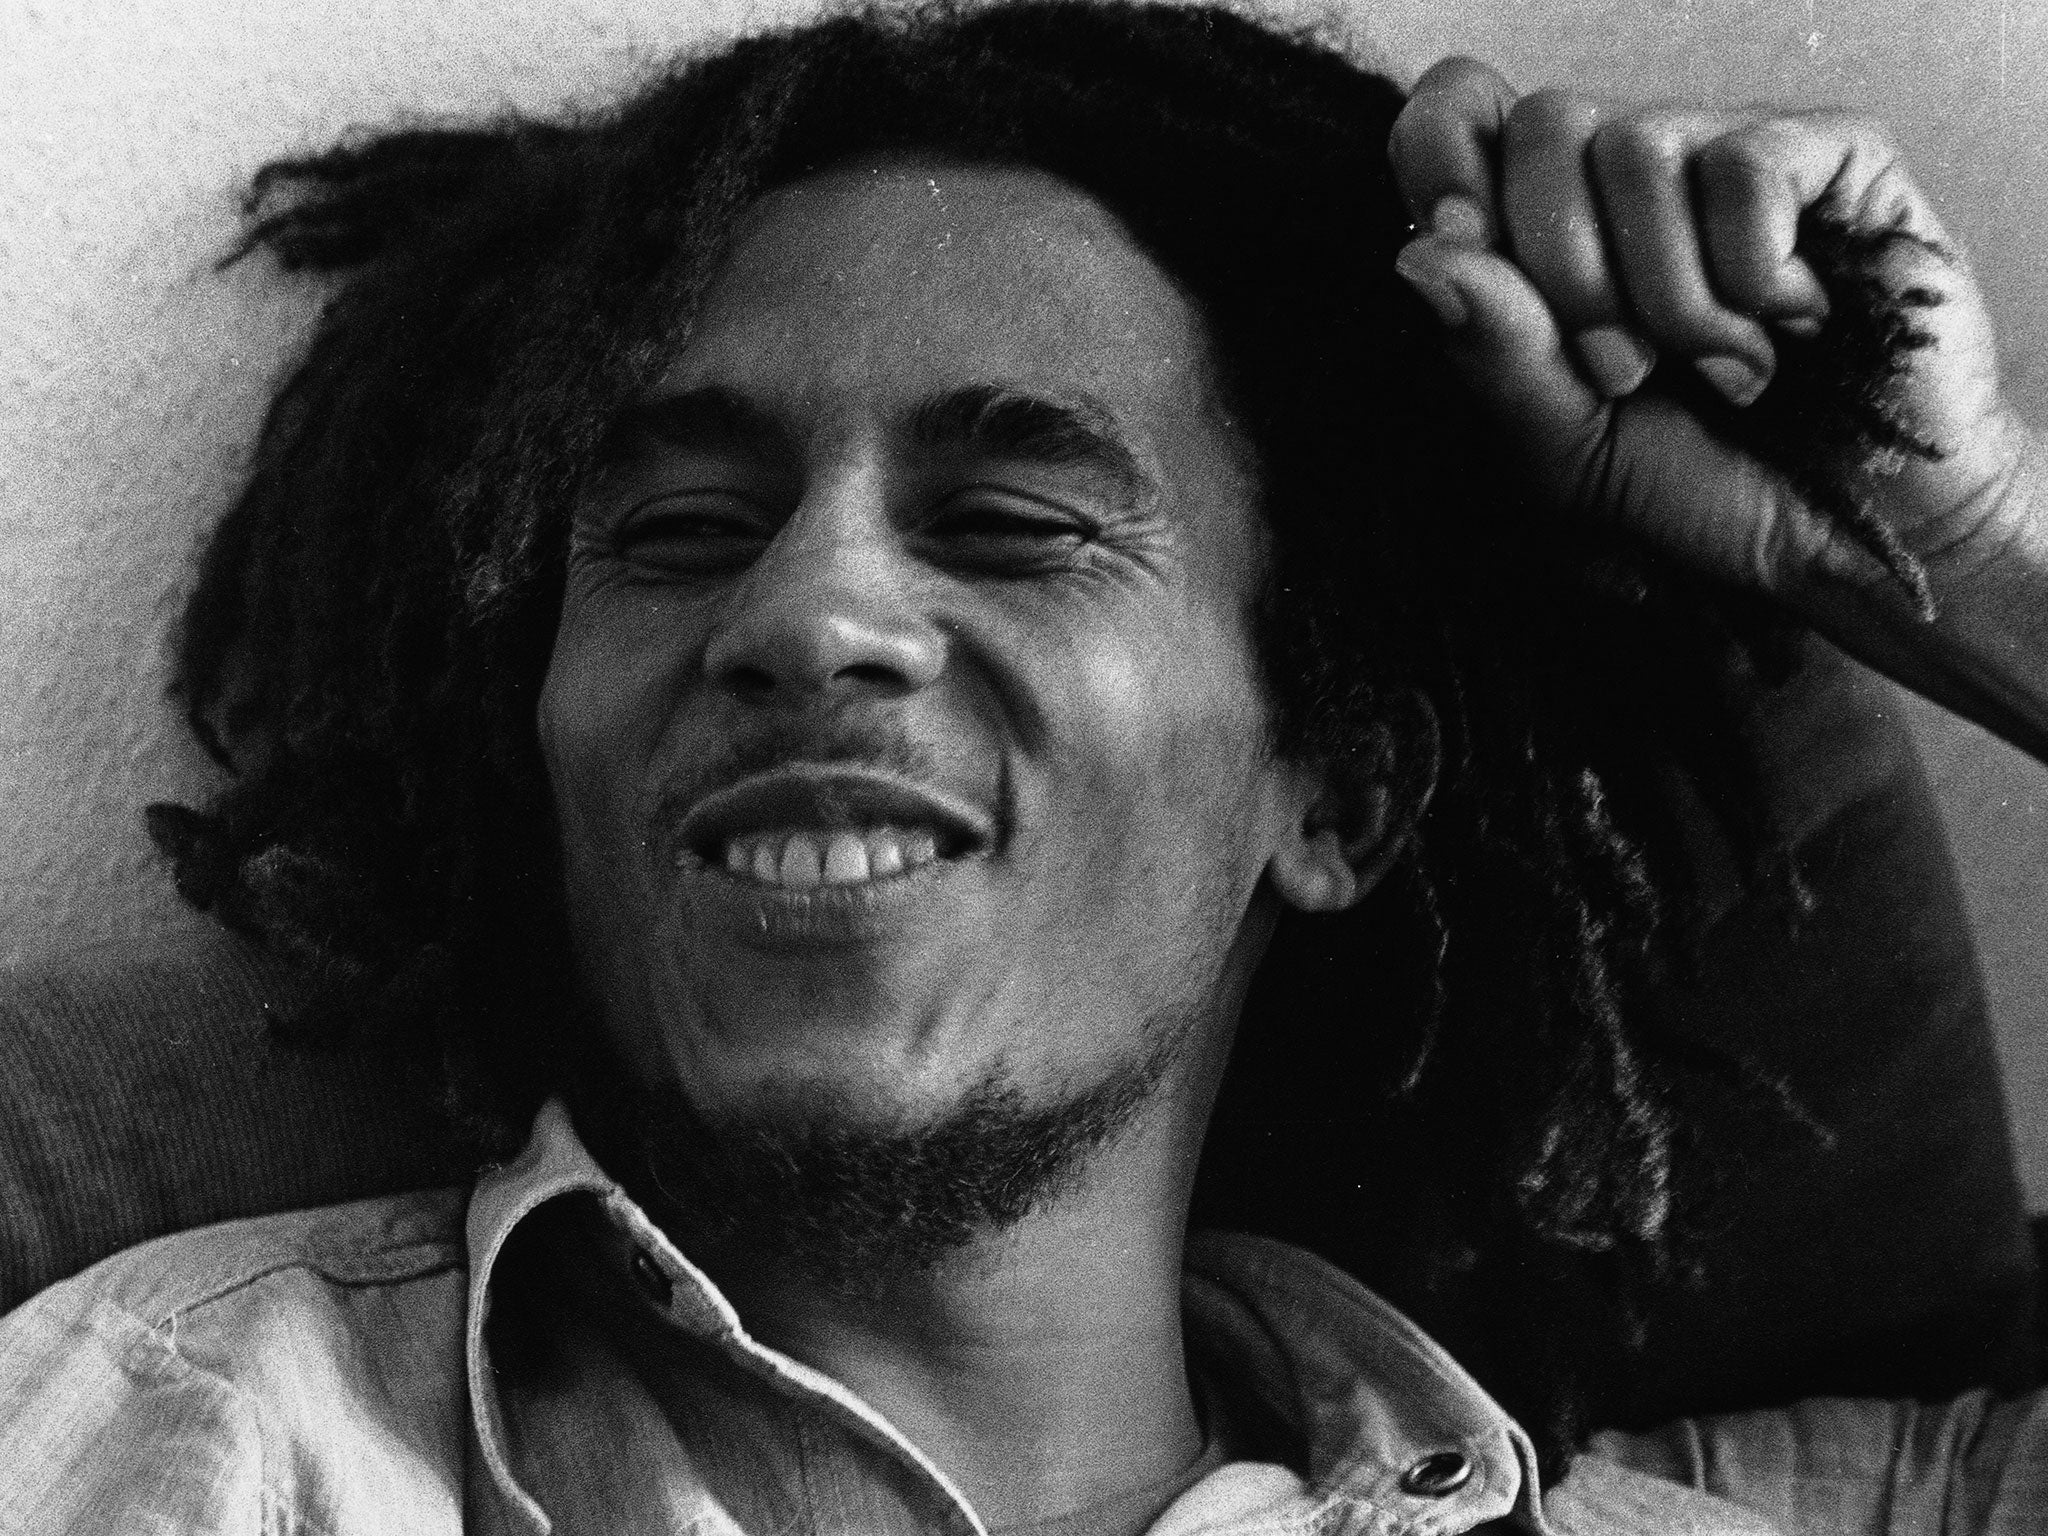 the early life and music career of bob marley 10062012  uncertain about the prospects of a music career for her son, cedella encouraged bob to pursue a trade when bob left school at 14 years old she found him a.